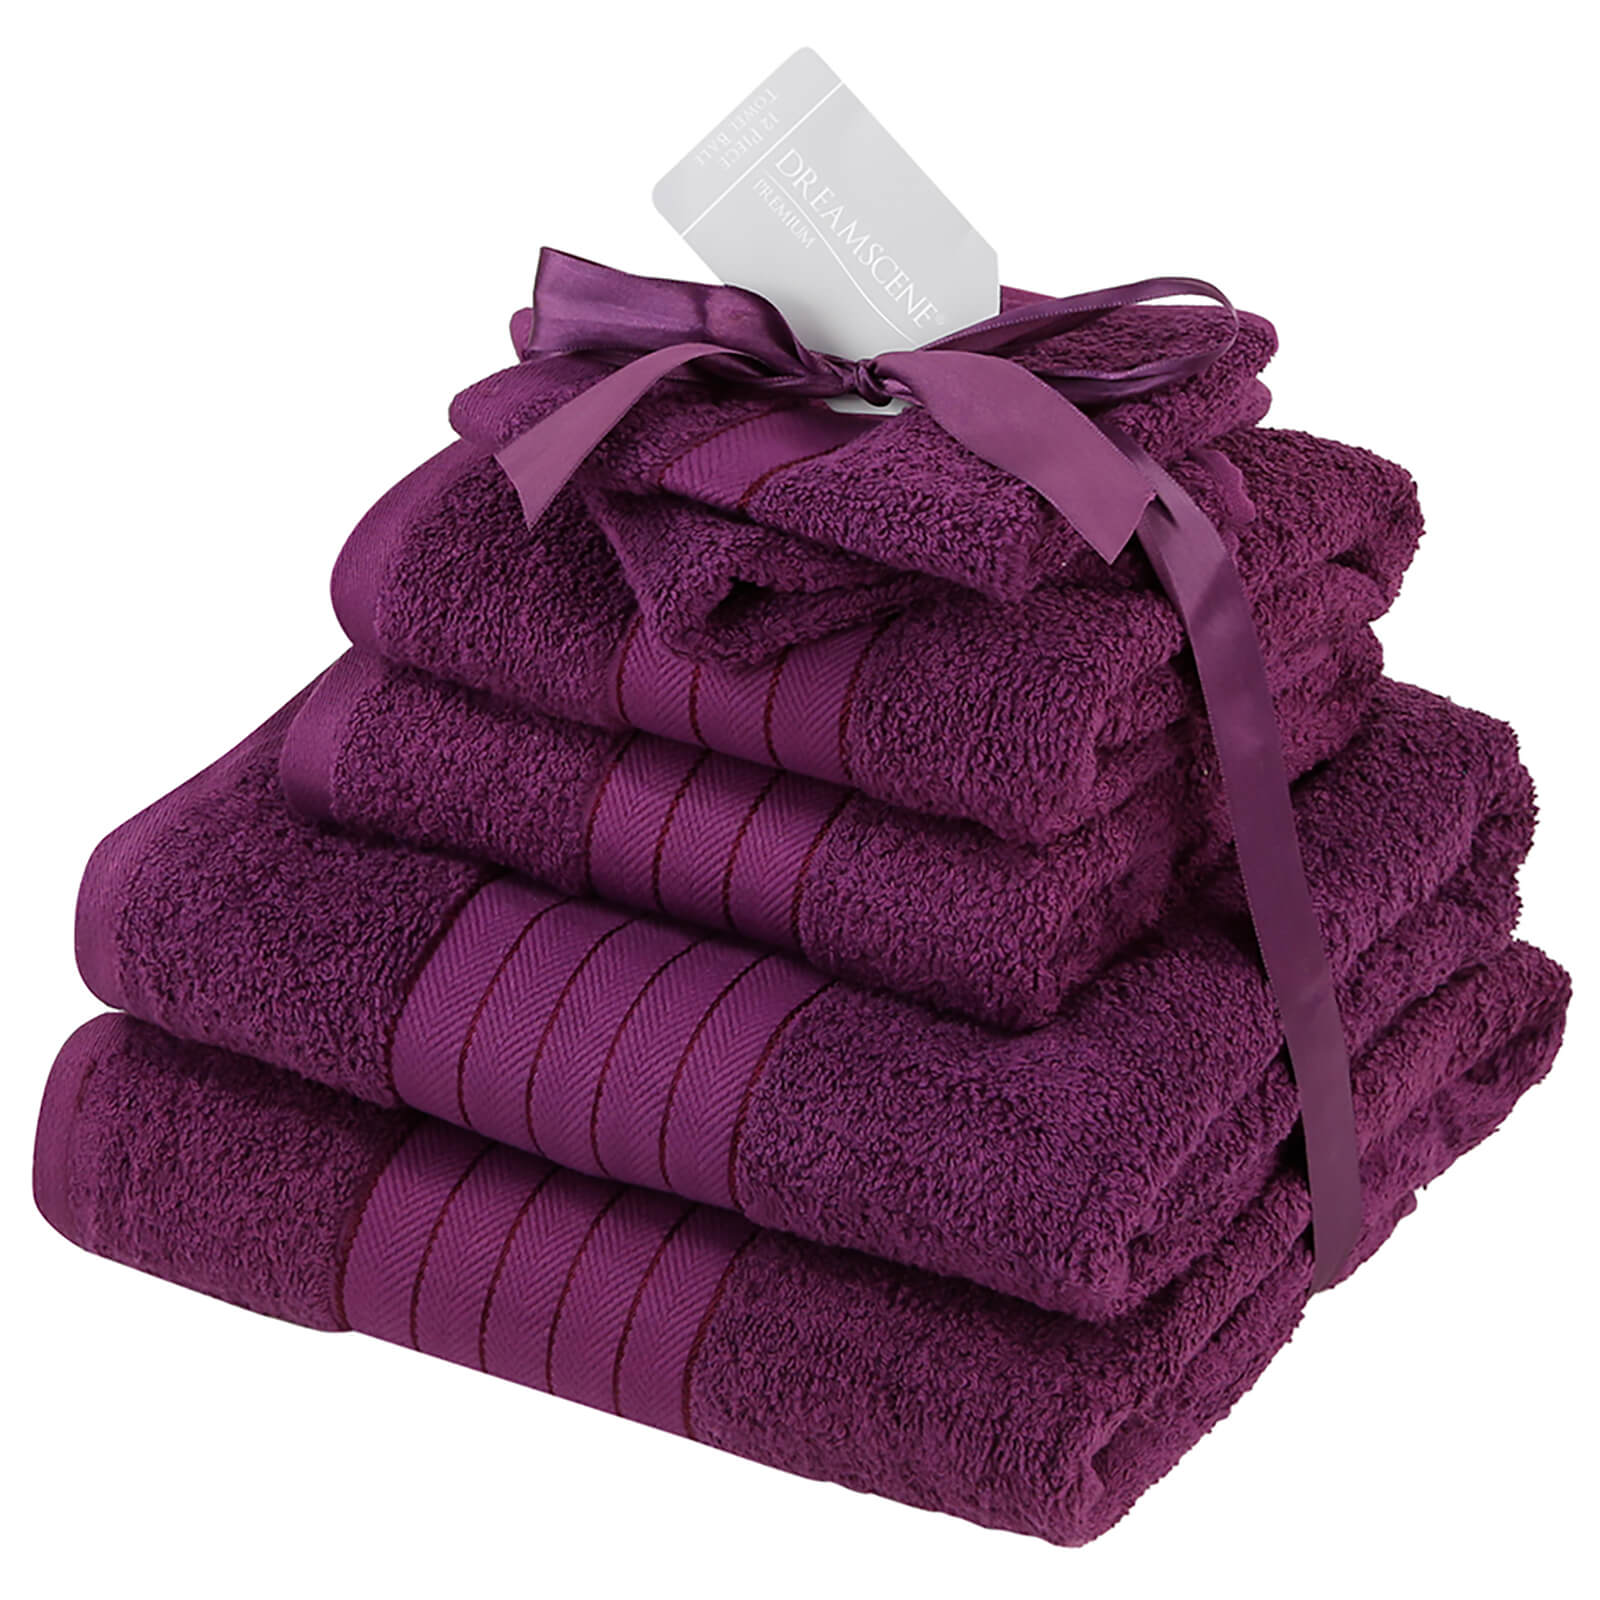 Highams 100% Cotton 6 Piece Towel Bale (500GSM) - Purple